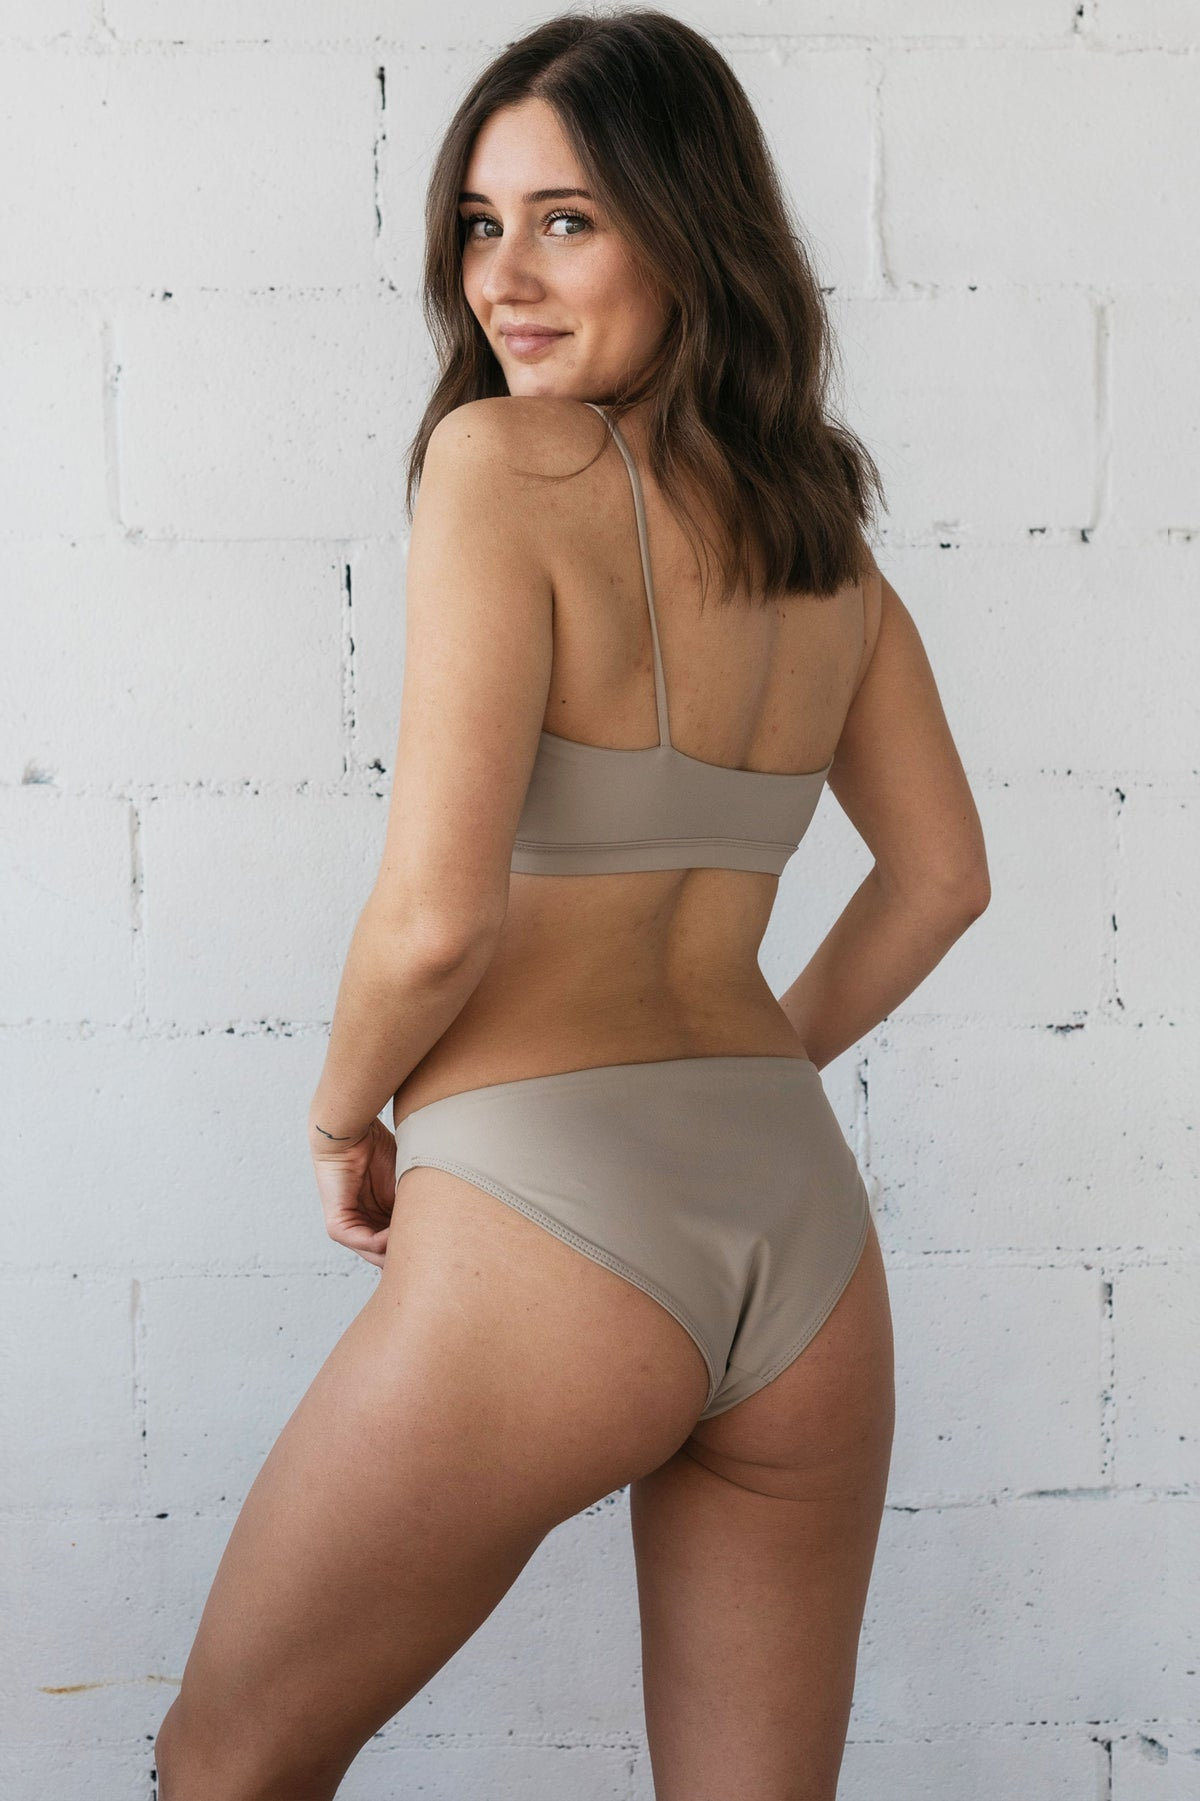 The back of a woman looking over her shoulder wearing beige high cut bikini bottoms and a matching beige bikini top with spaghetti straps.